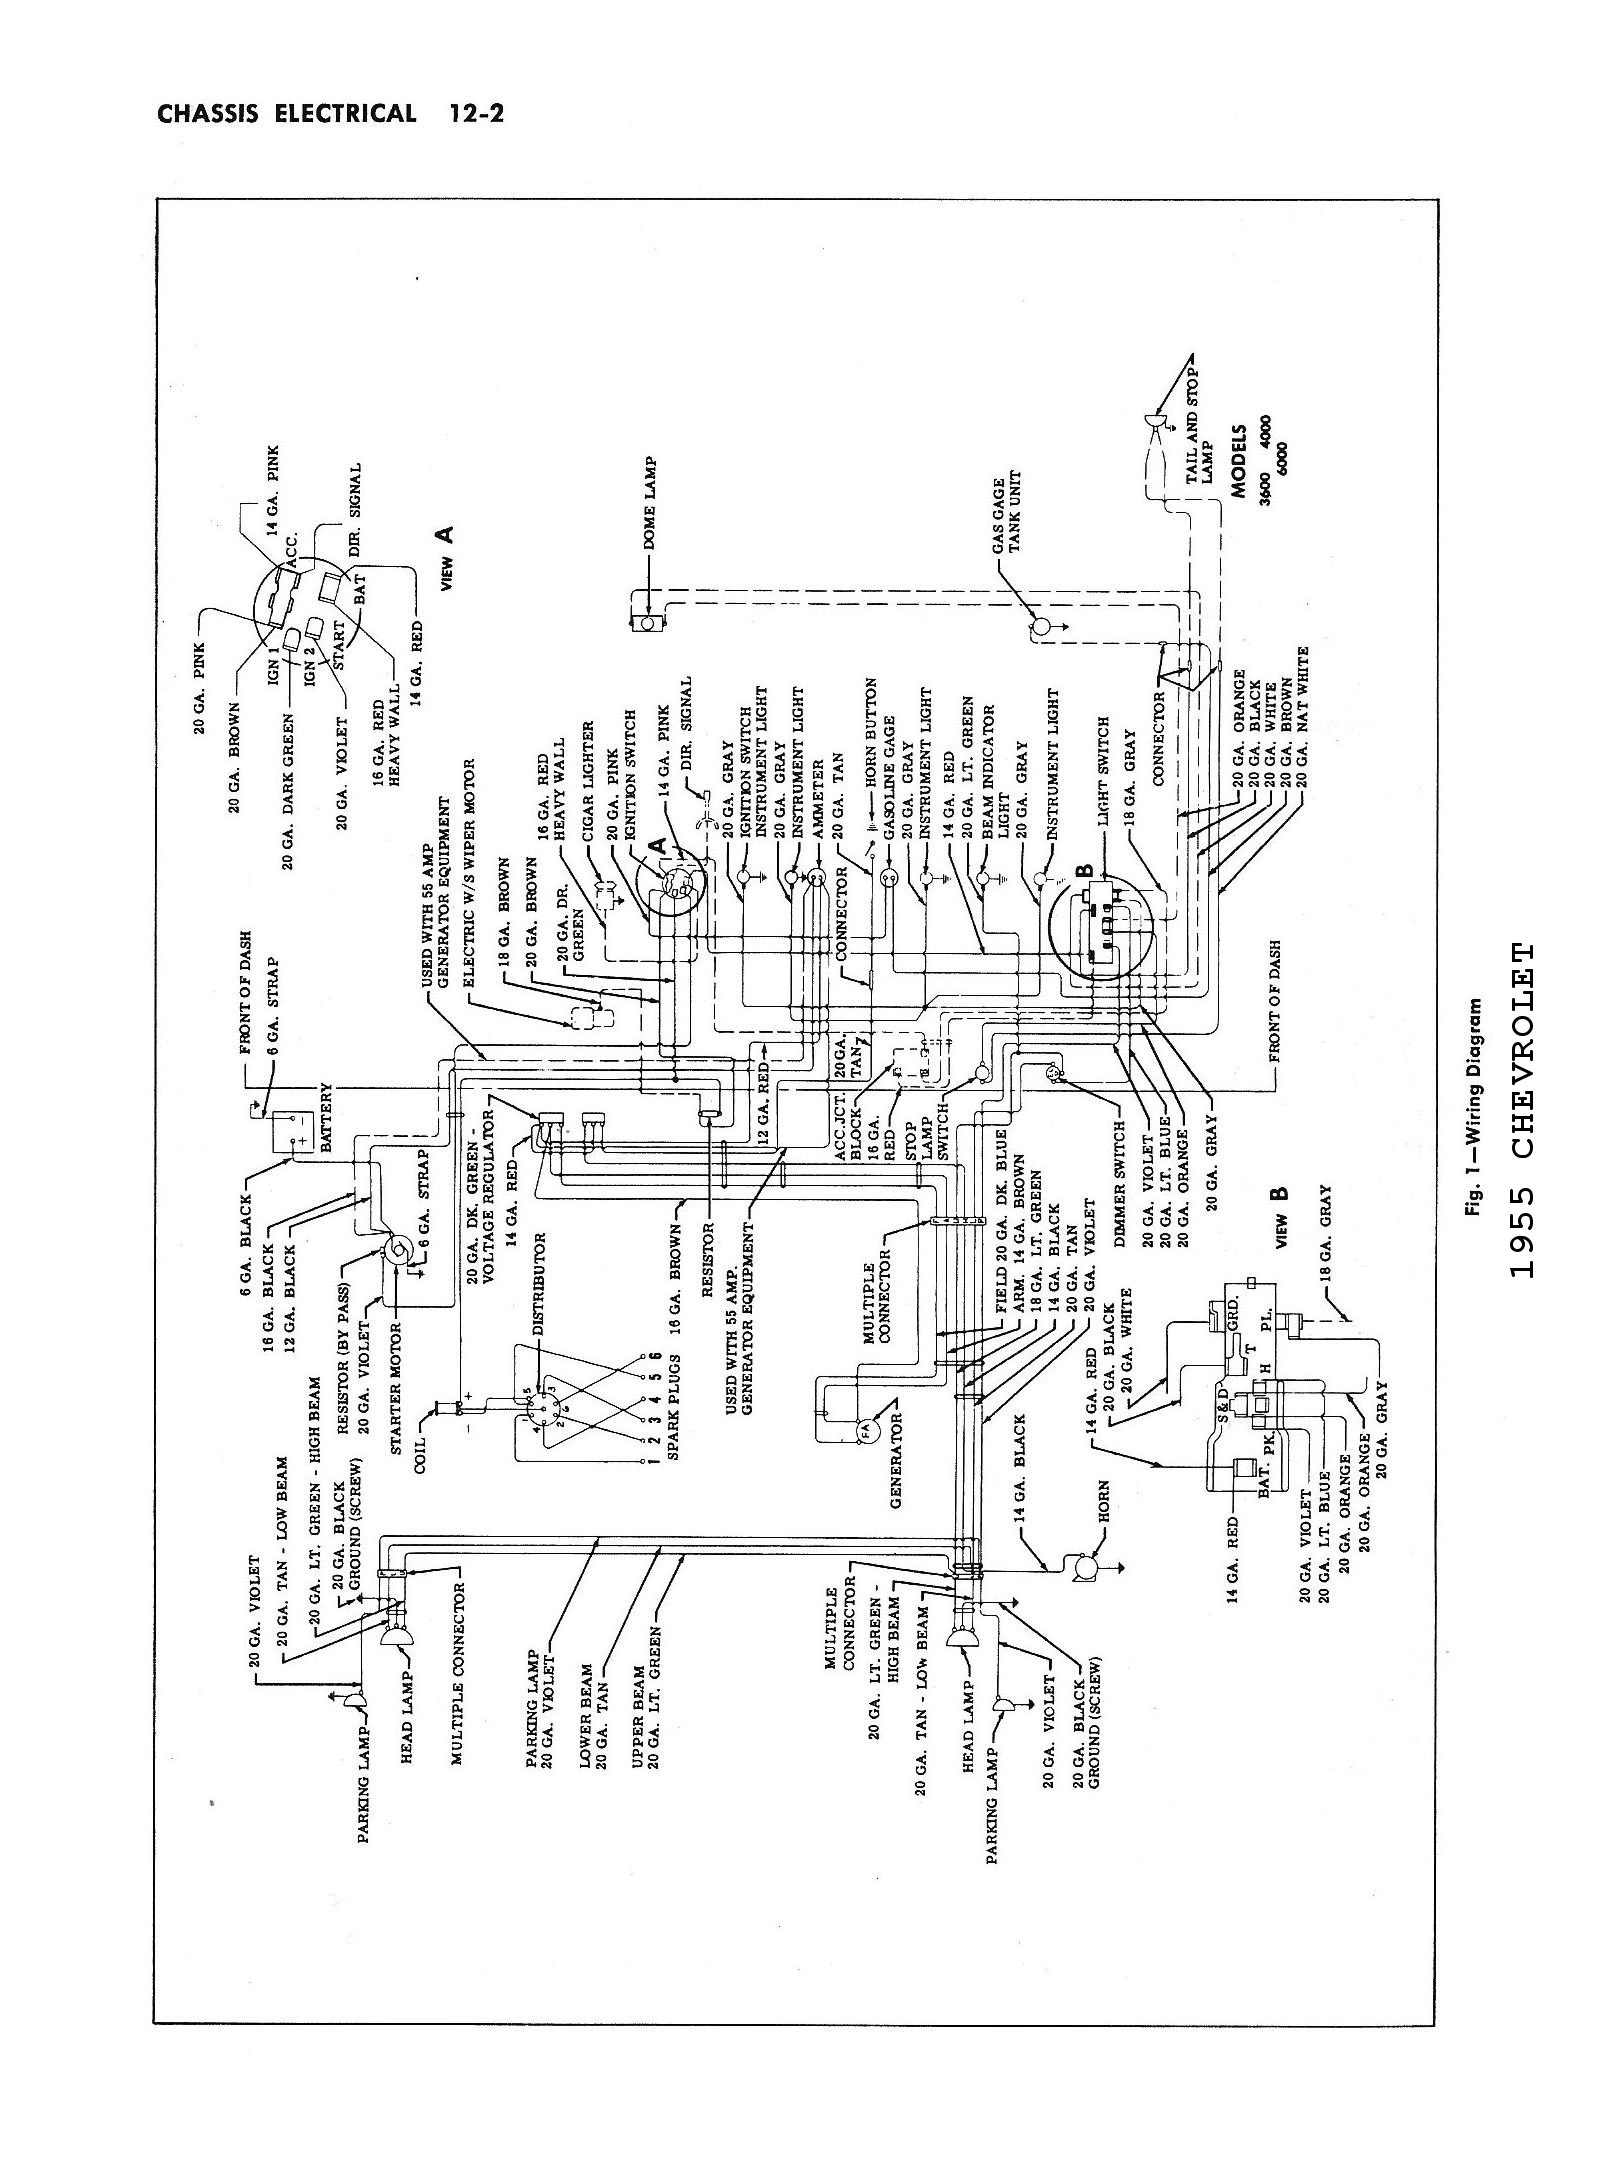 2005 Chevy Malibu Ignition Switch Wiring Diagram Free Picture 305 58 Truck Schematic Rh Theodocle Fion Com 1969